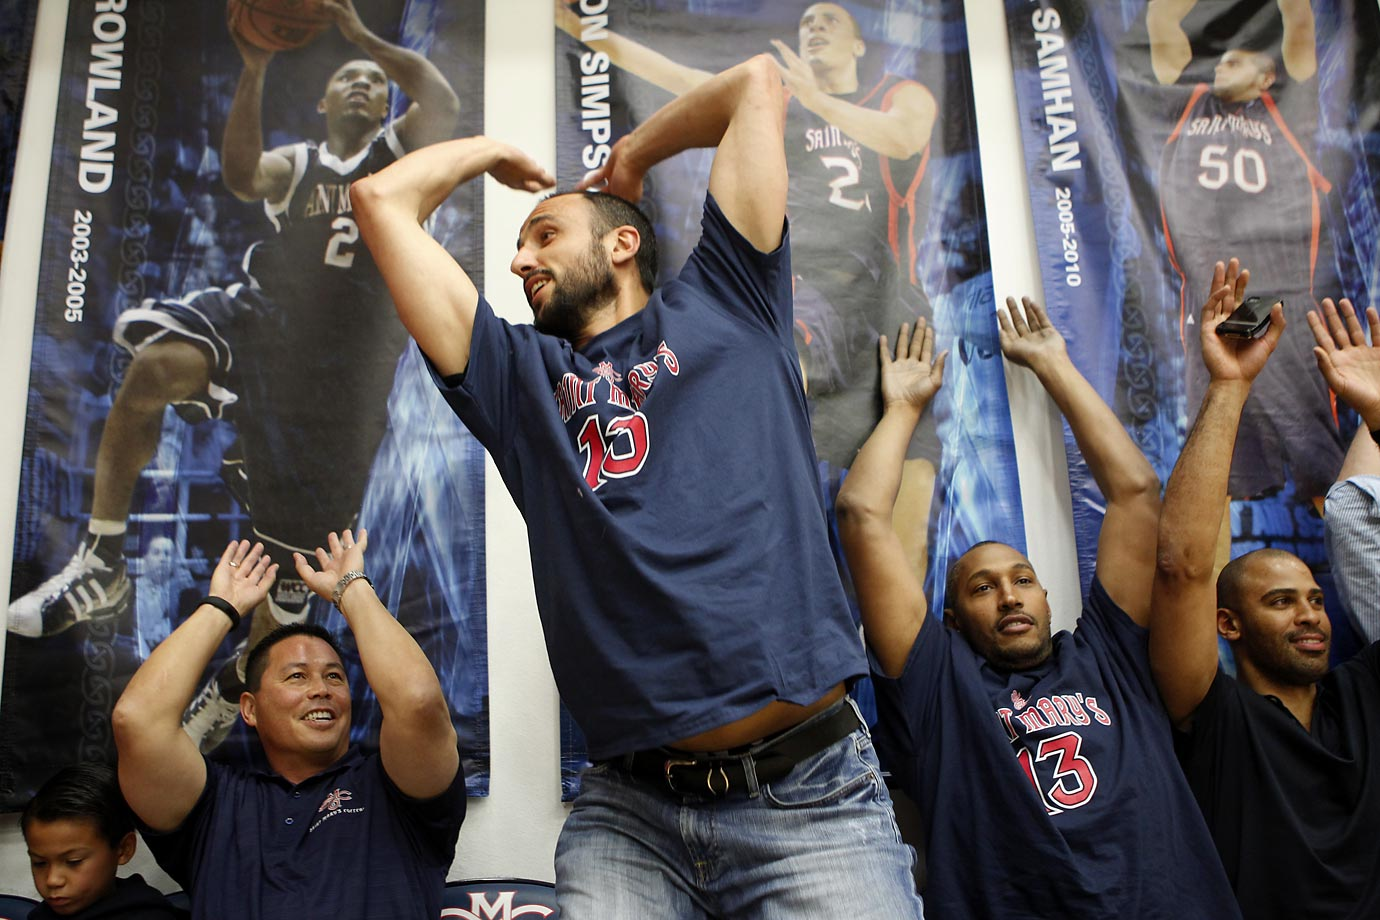 San Antonio Spurs' Manu Ginobili and Boris Diaw take part in the wave with fans.